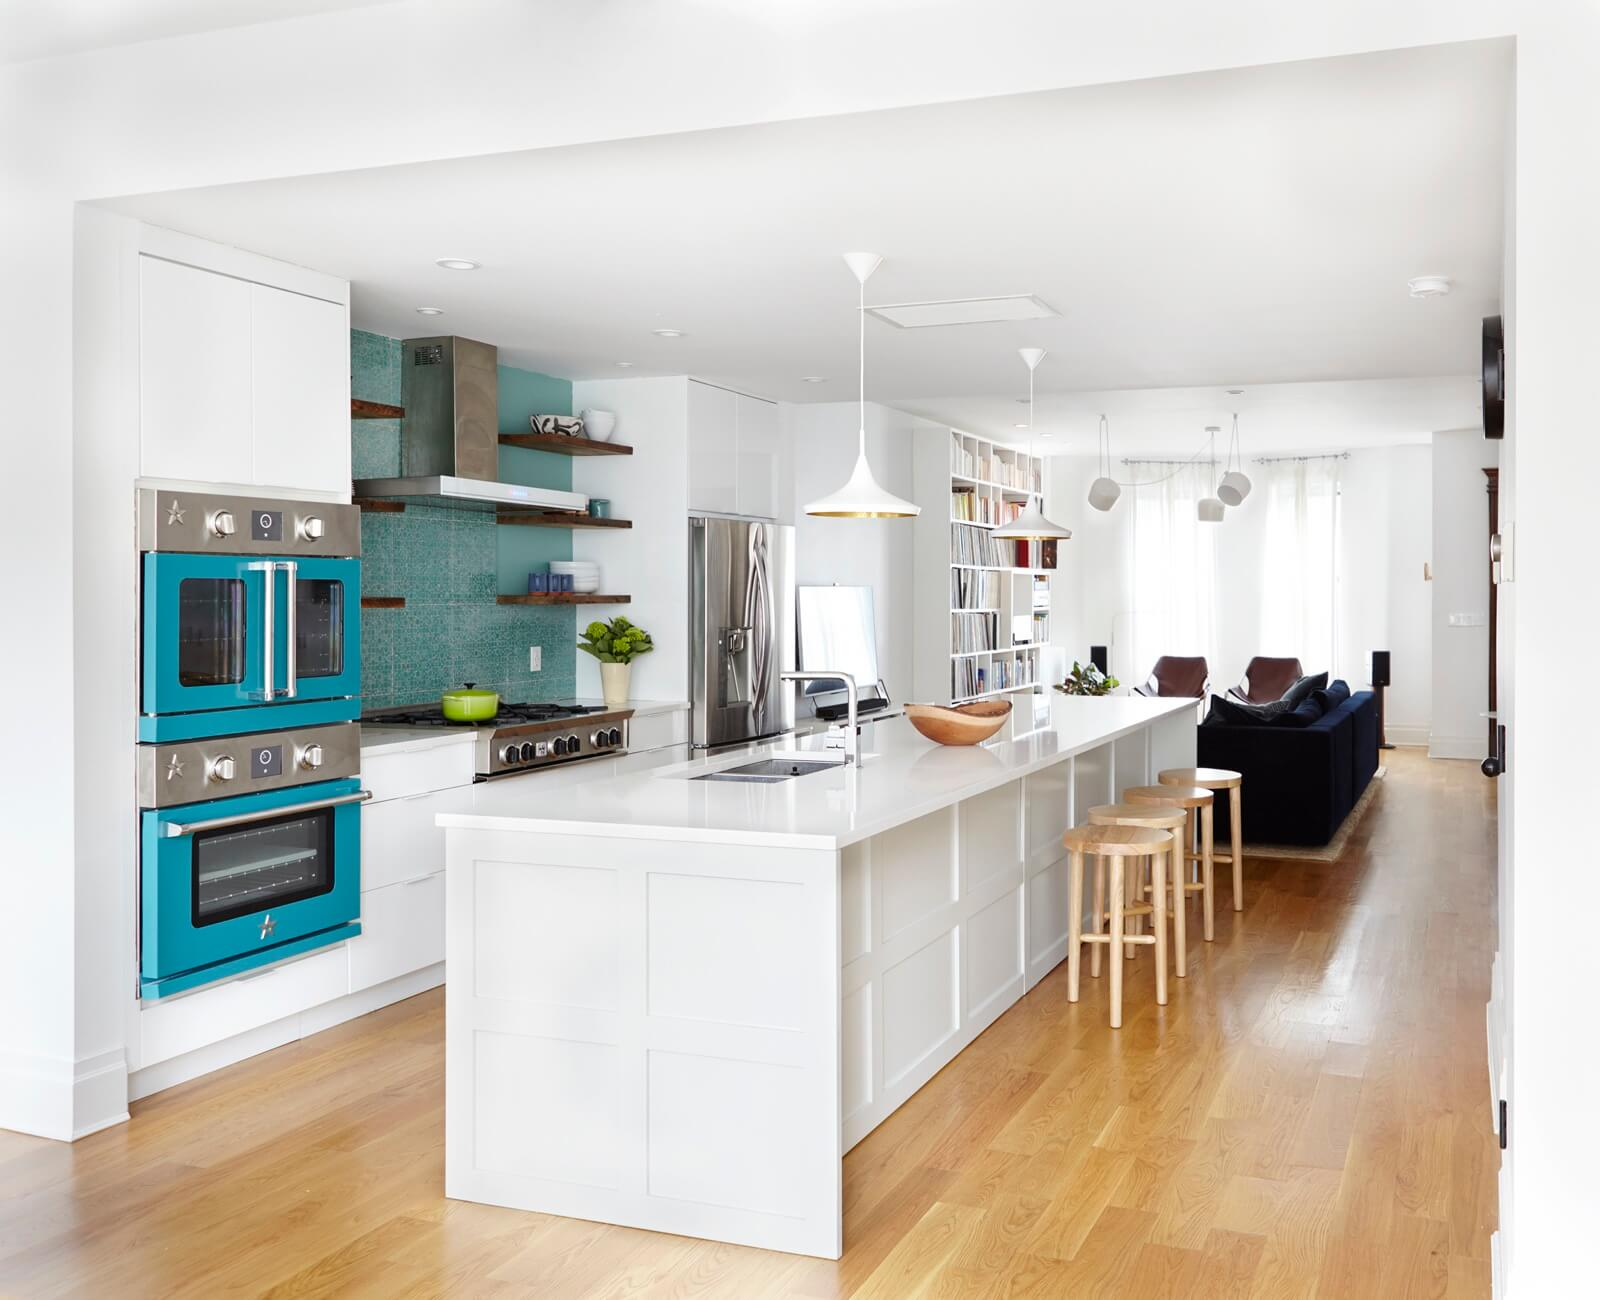 Kitchen Design Queens Ny Interior Design Ideas Brooklyn Row House Updated With Fun